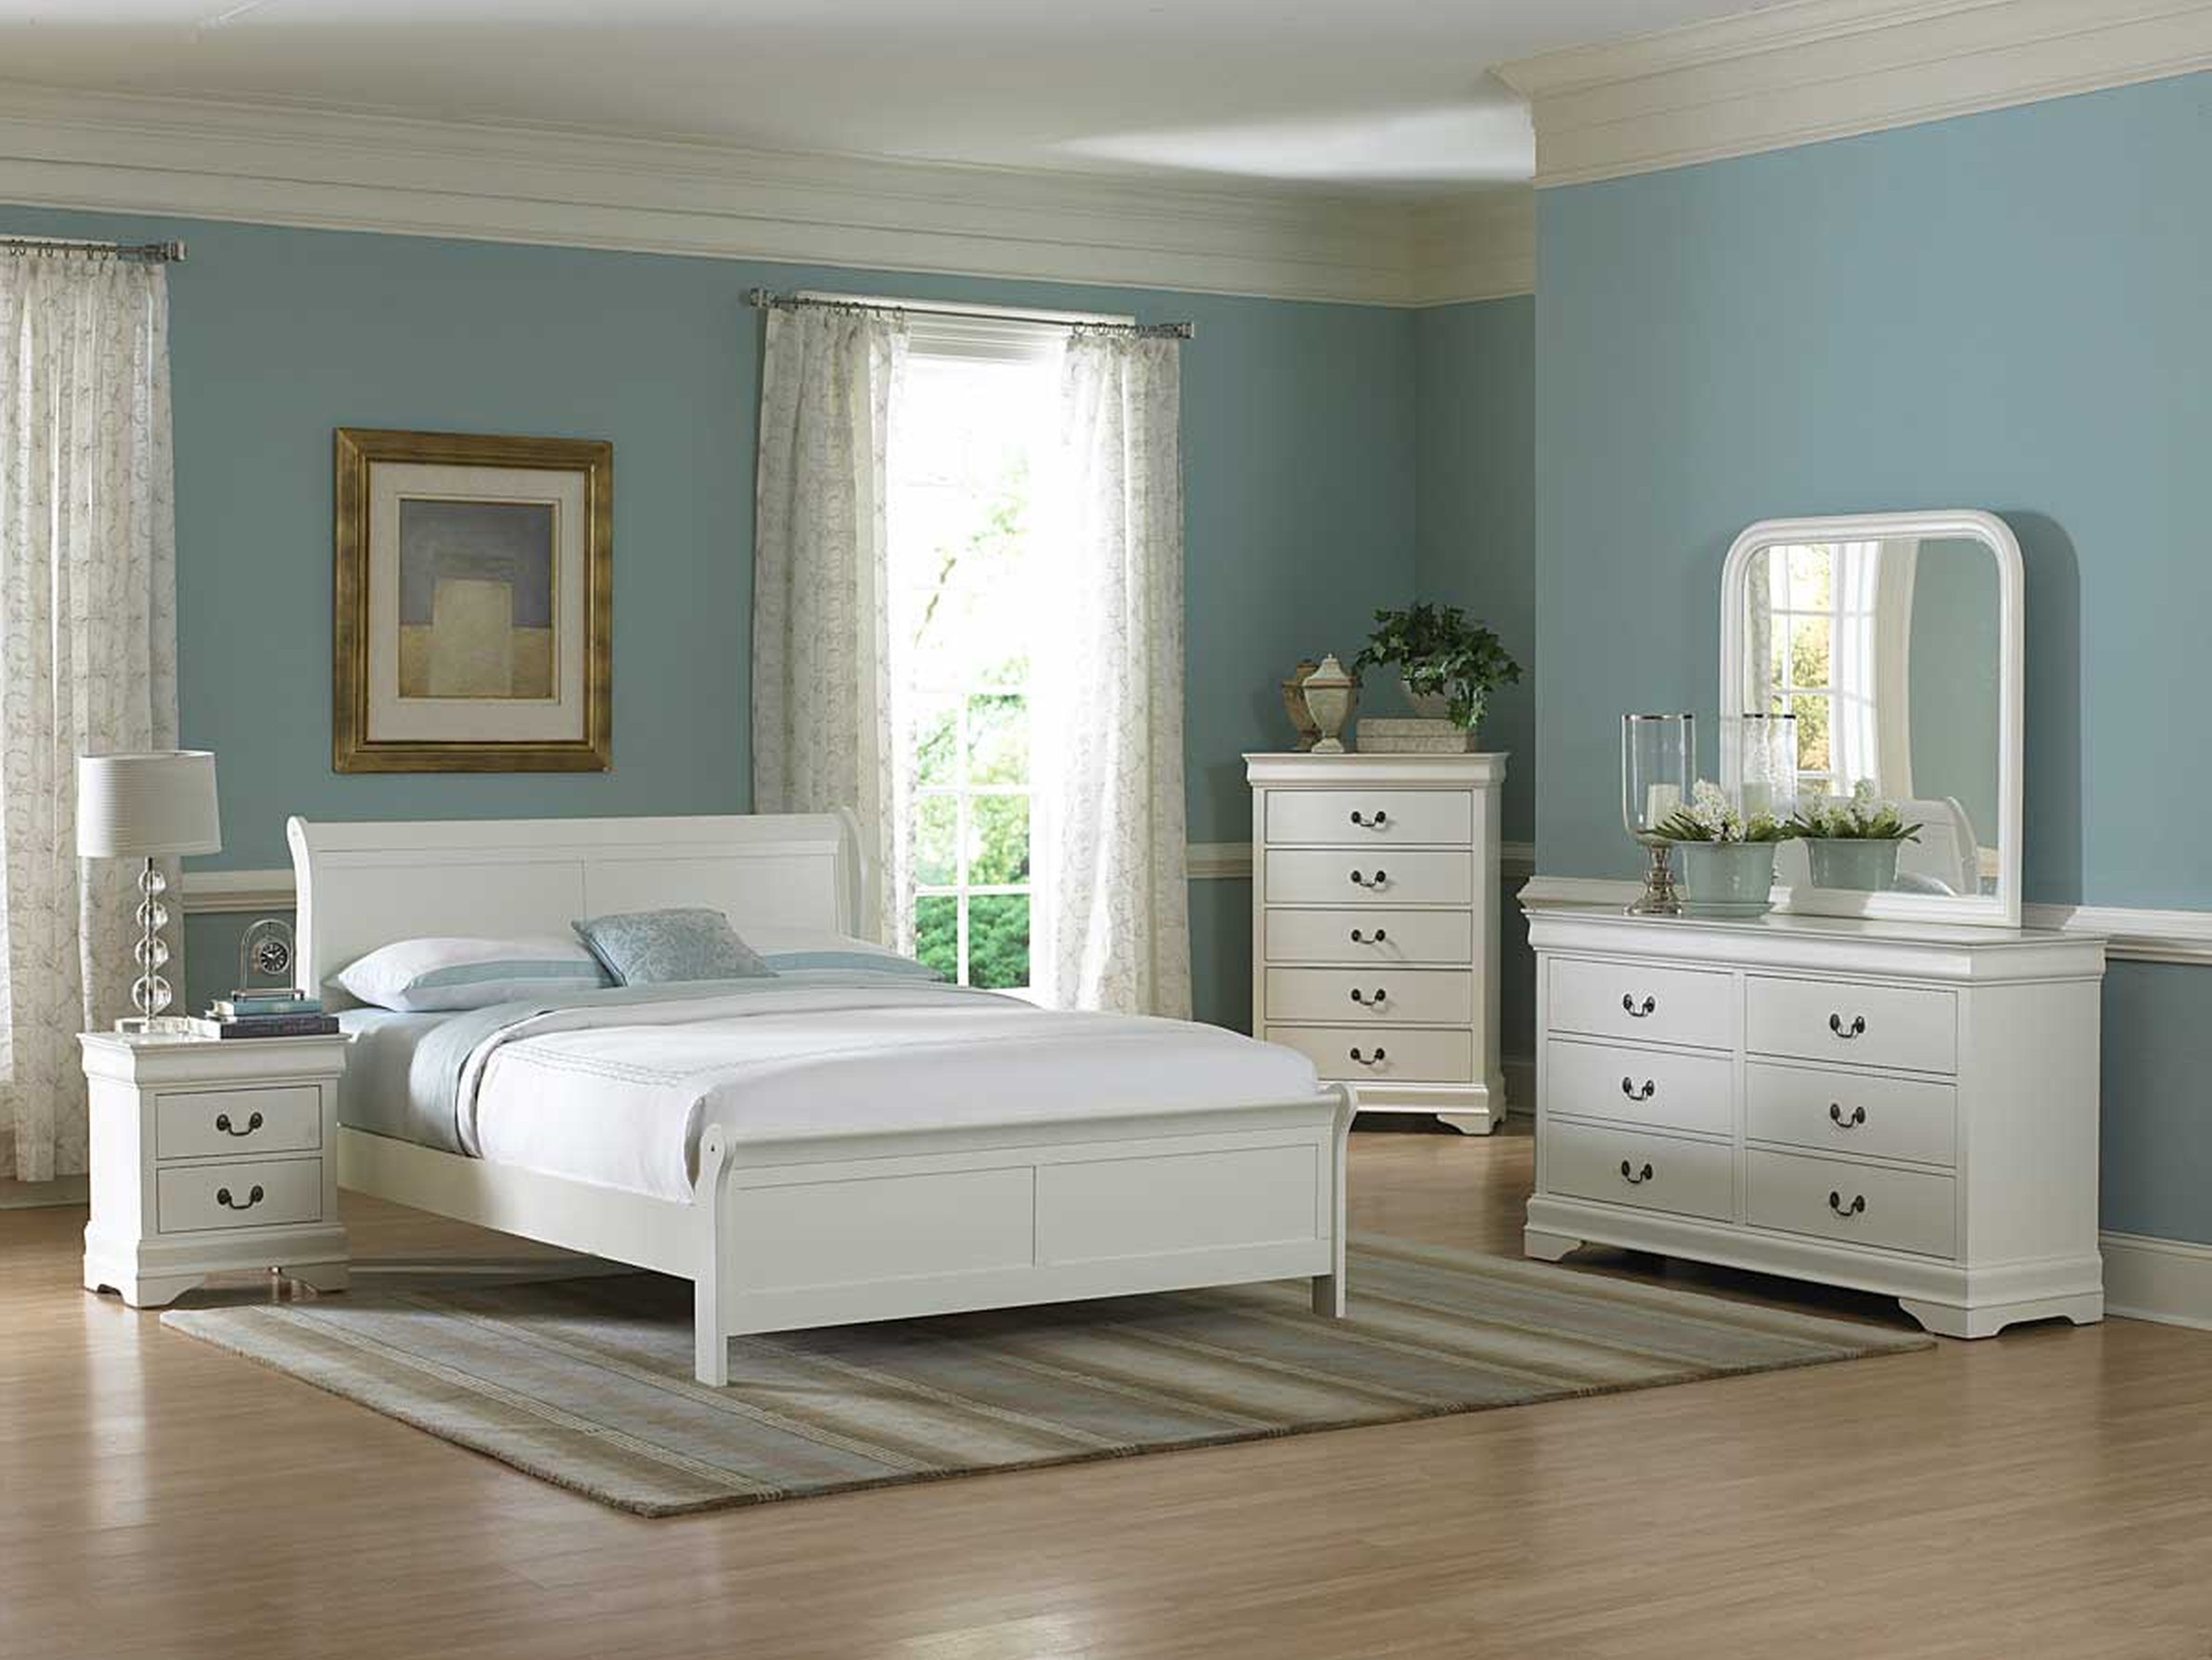 bedroom with white furniture decorating ideas photo - 10